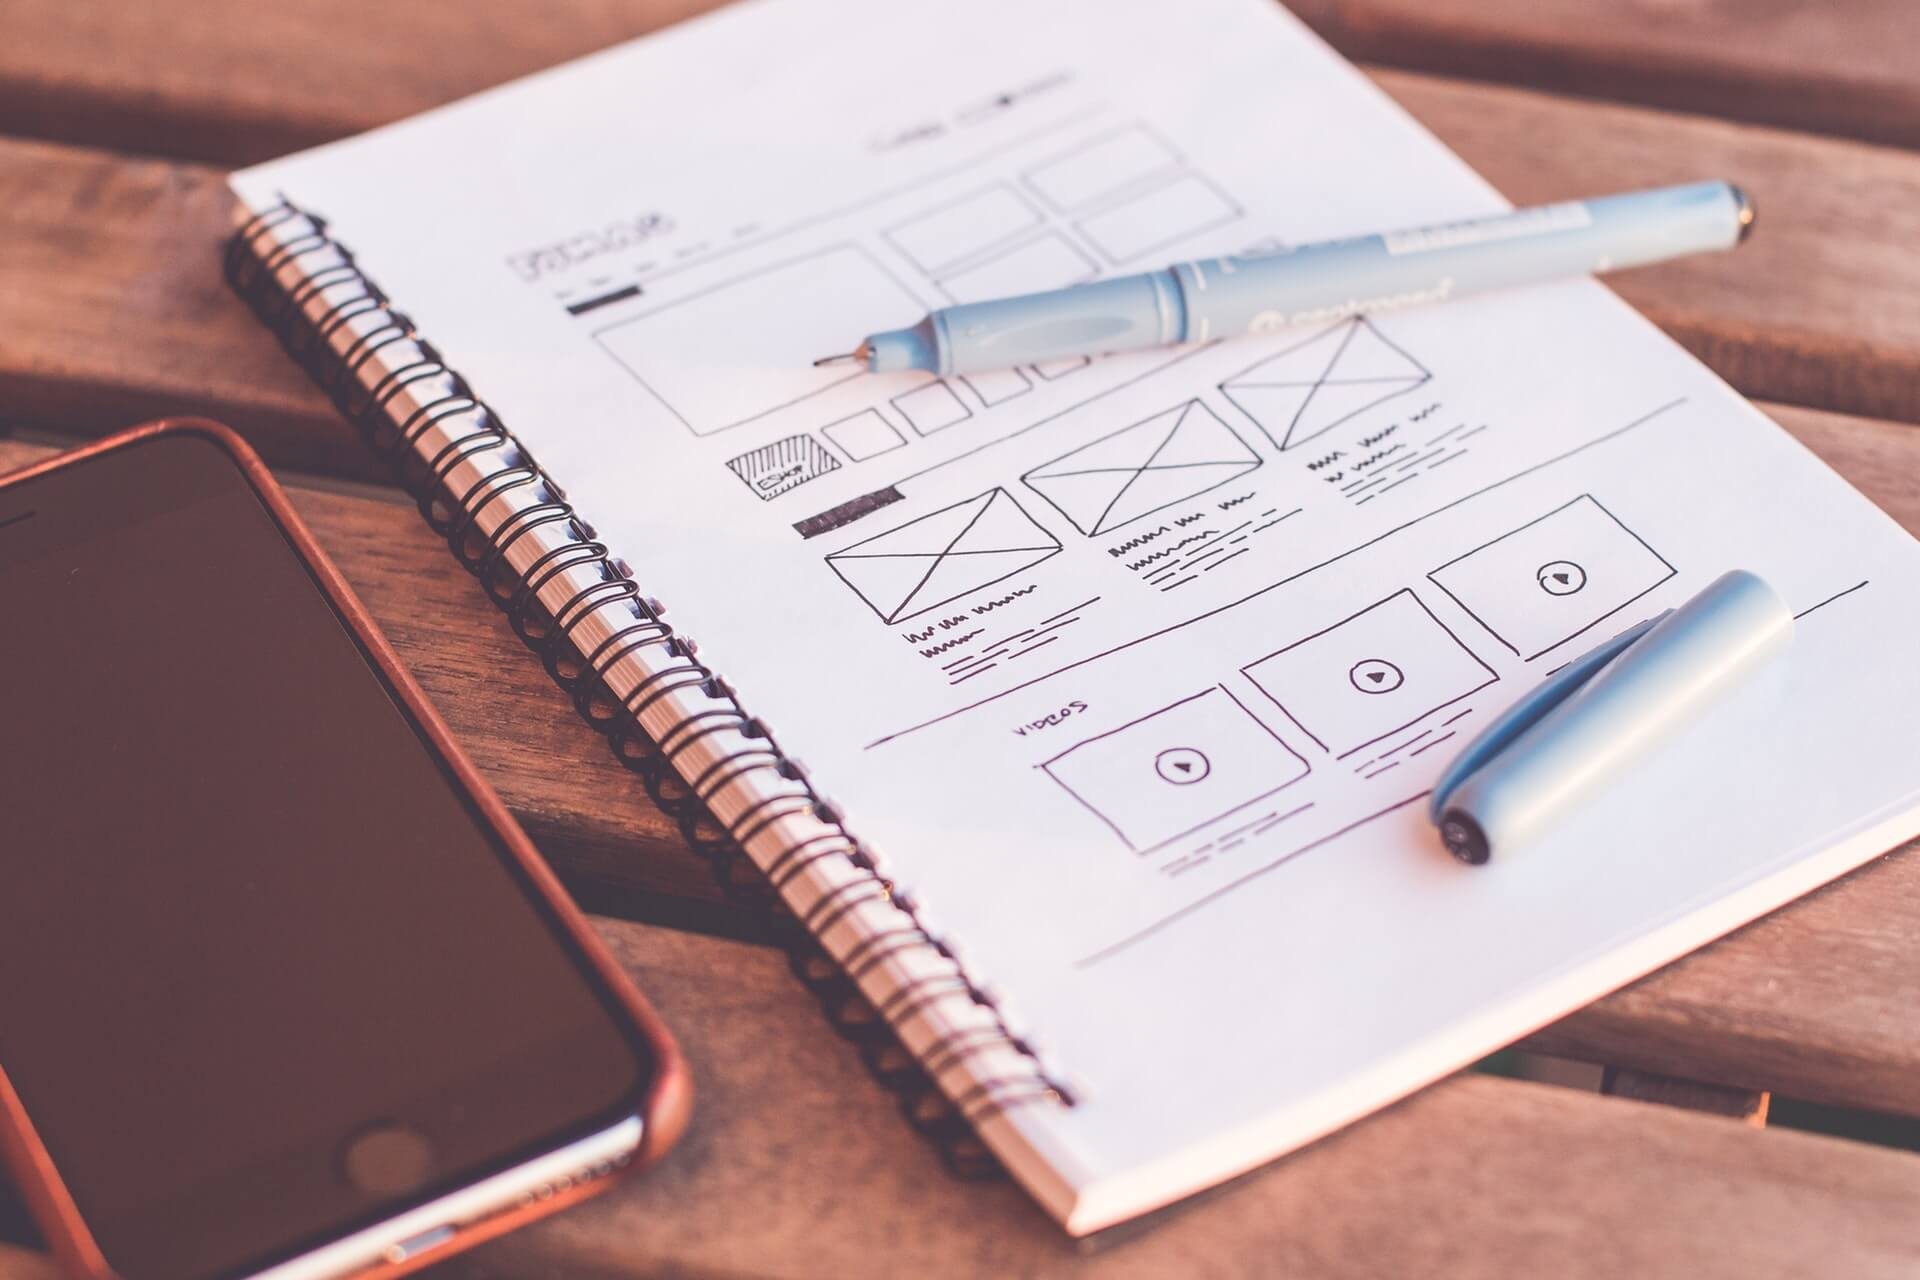 Web design services - wireframing example